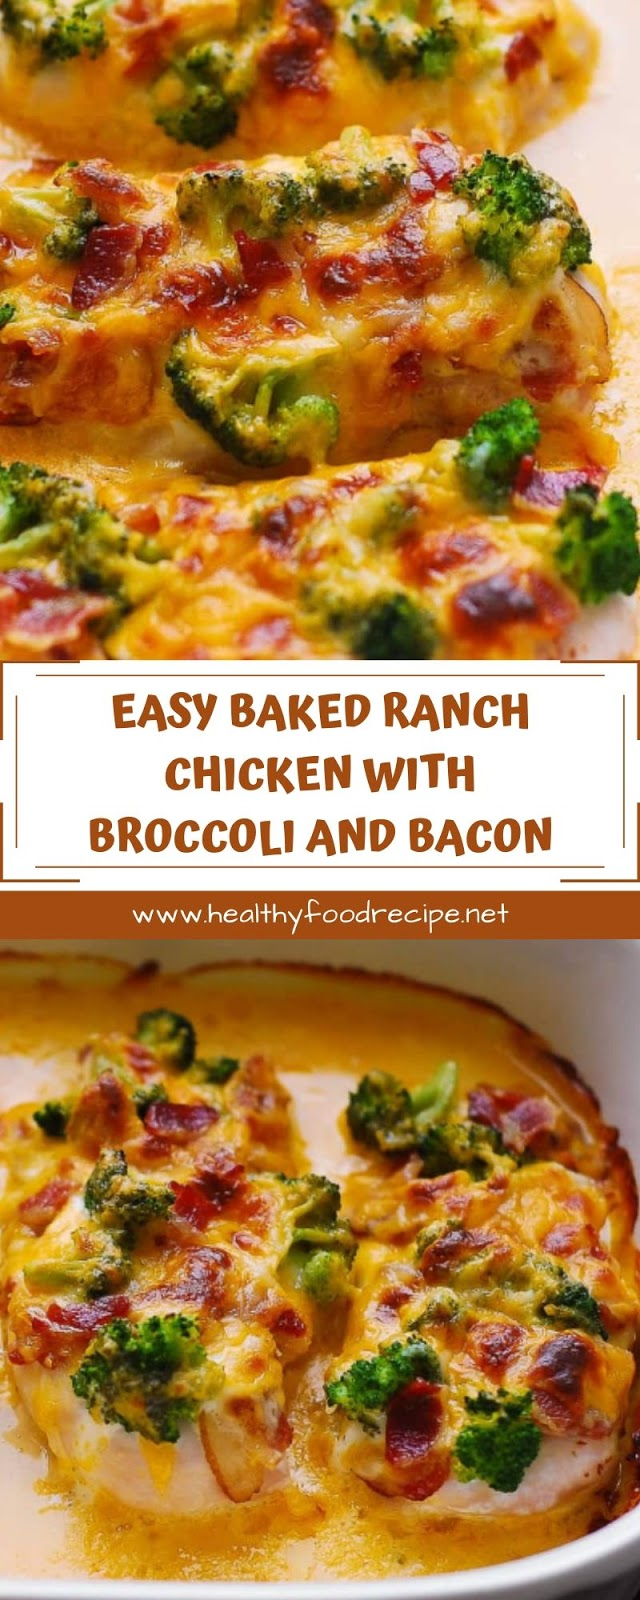 EASY BAKED RANCH CHICKEN WITH BROCCOLI AND BACON